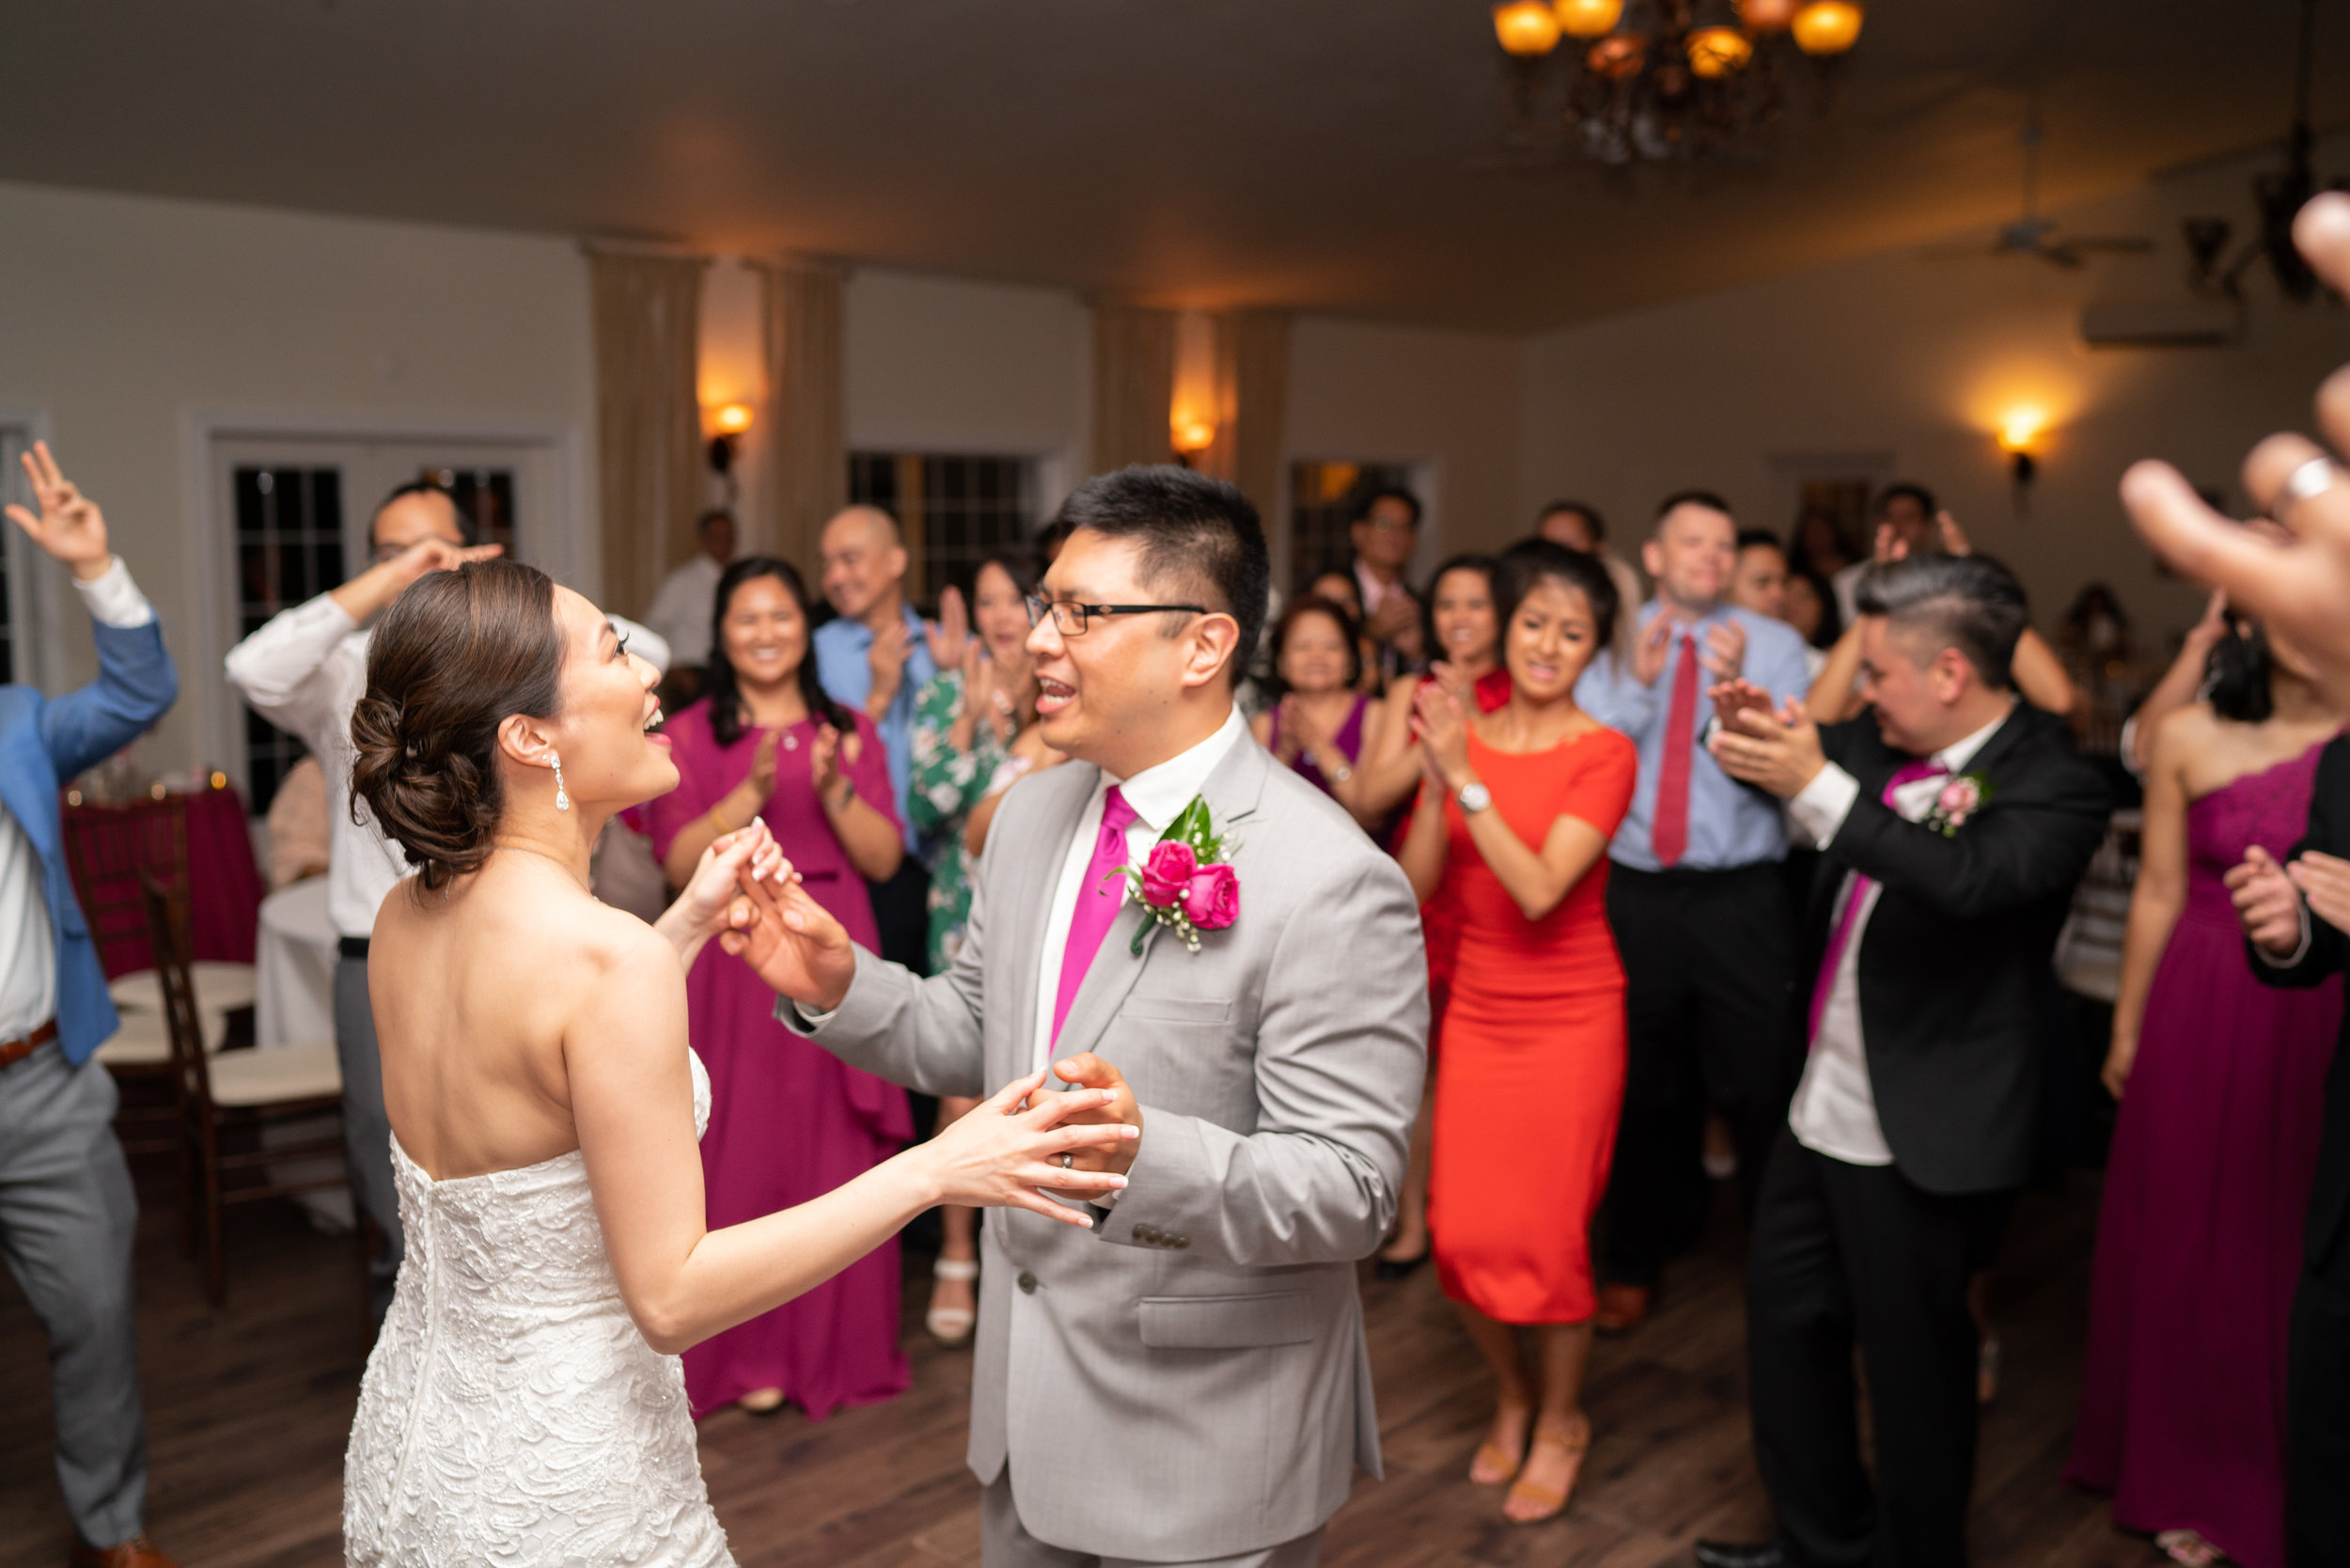 Last dance of the night with bride and groom in the middle of the dance floor